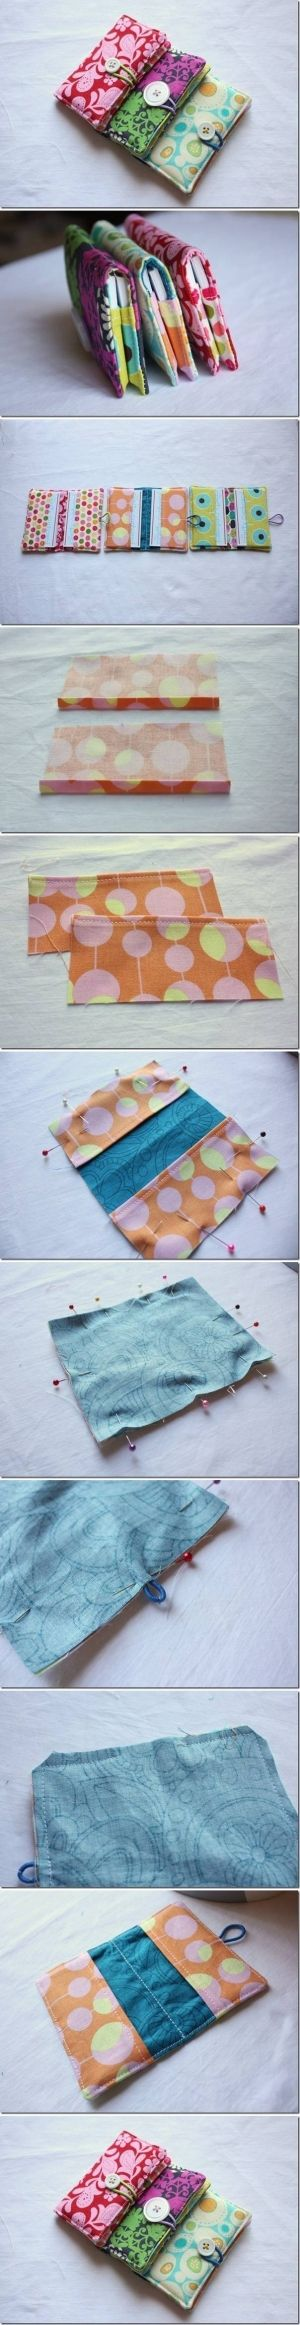 DIY Sew Business Card Holder DIY Sew Business Card Holder by diyforever